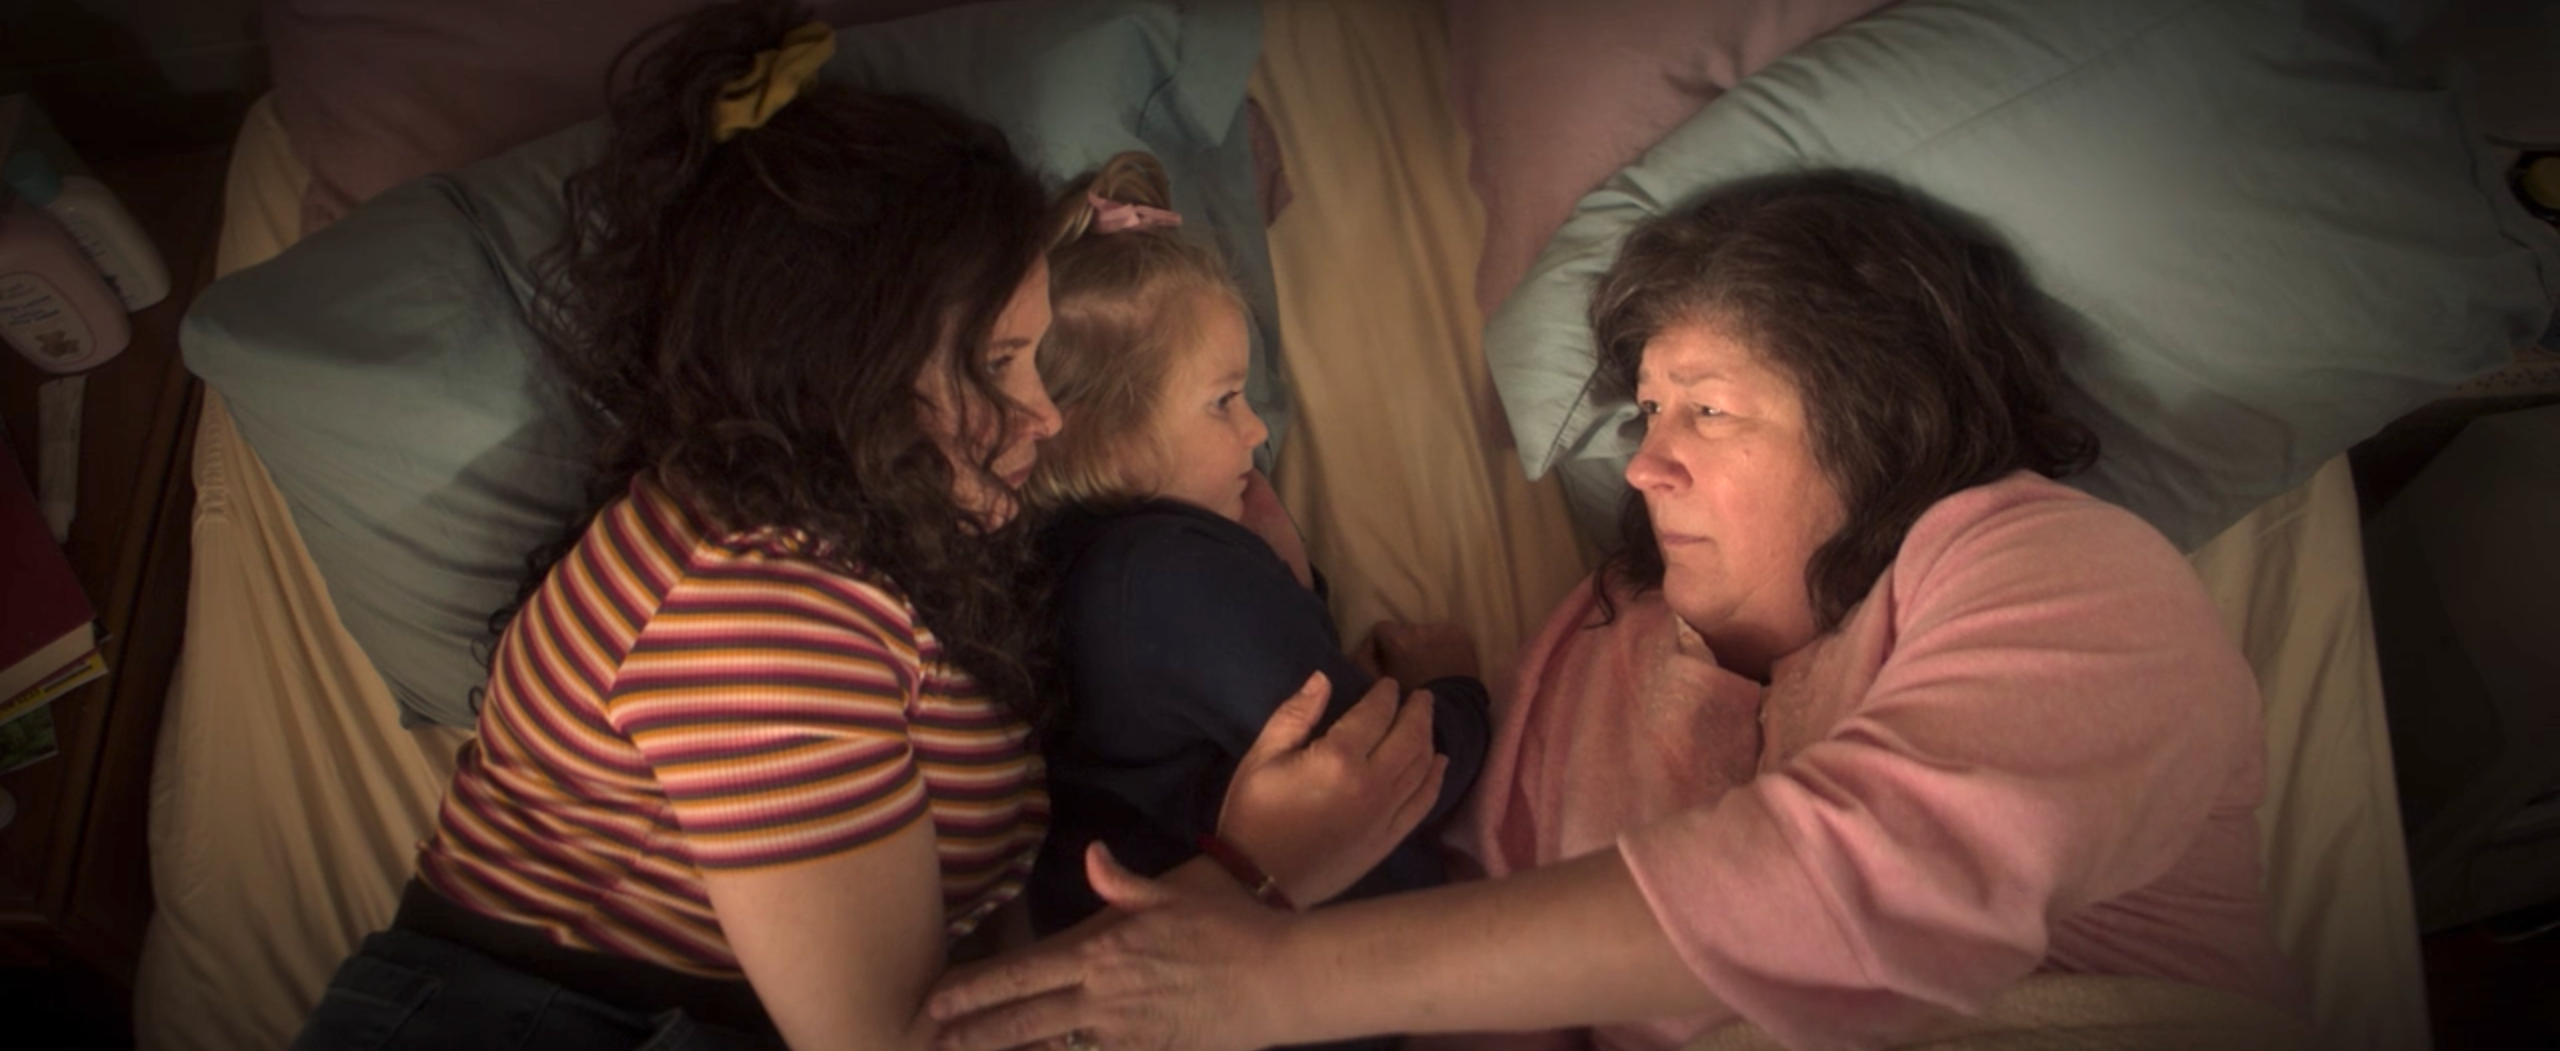 Debunking 'The Act' — Gypsy Rose Blanchard's Family Tells the True Story of Episode 6